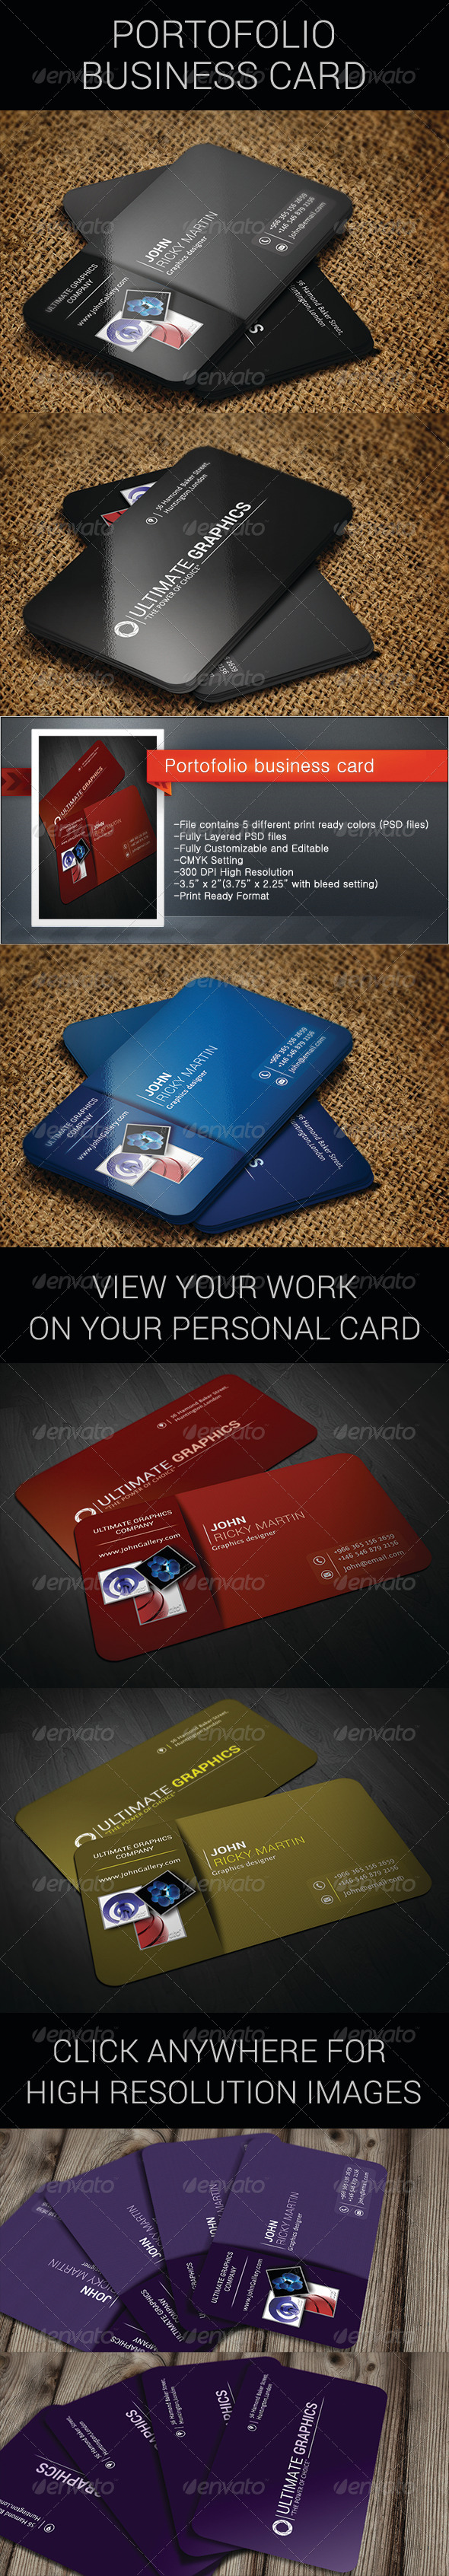 Portofolio business card - Business Cards Print Templates